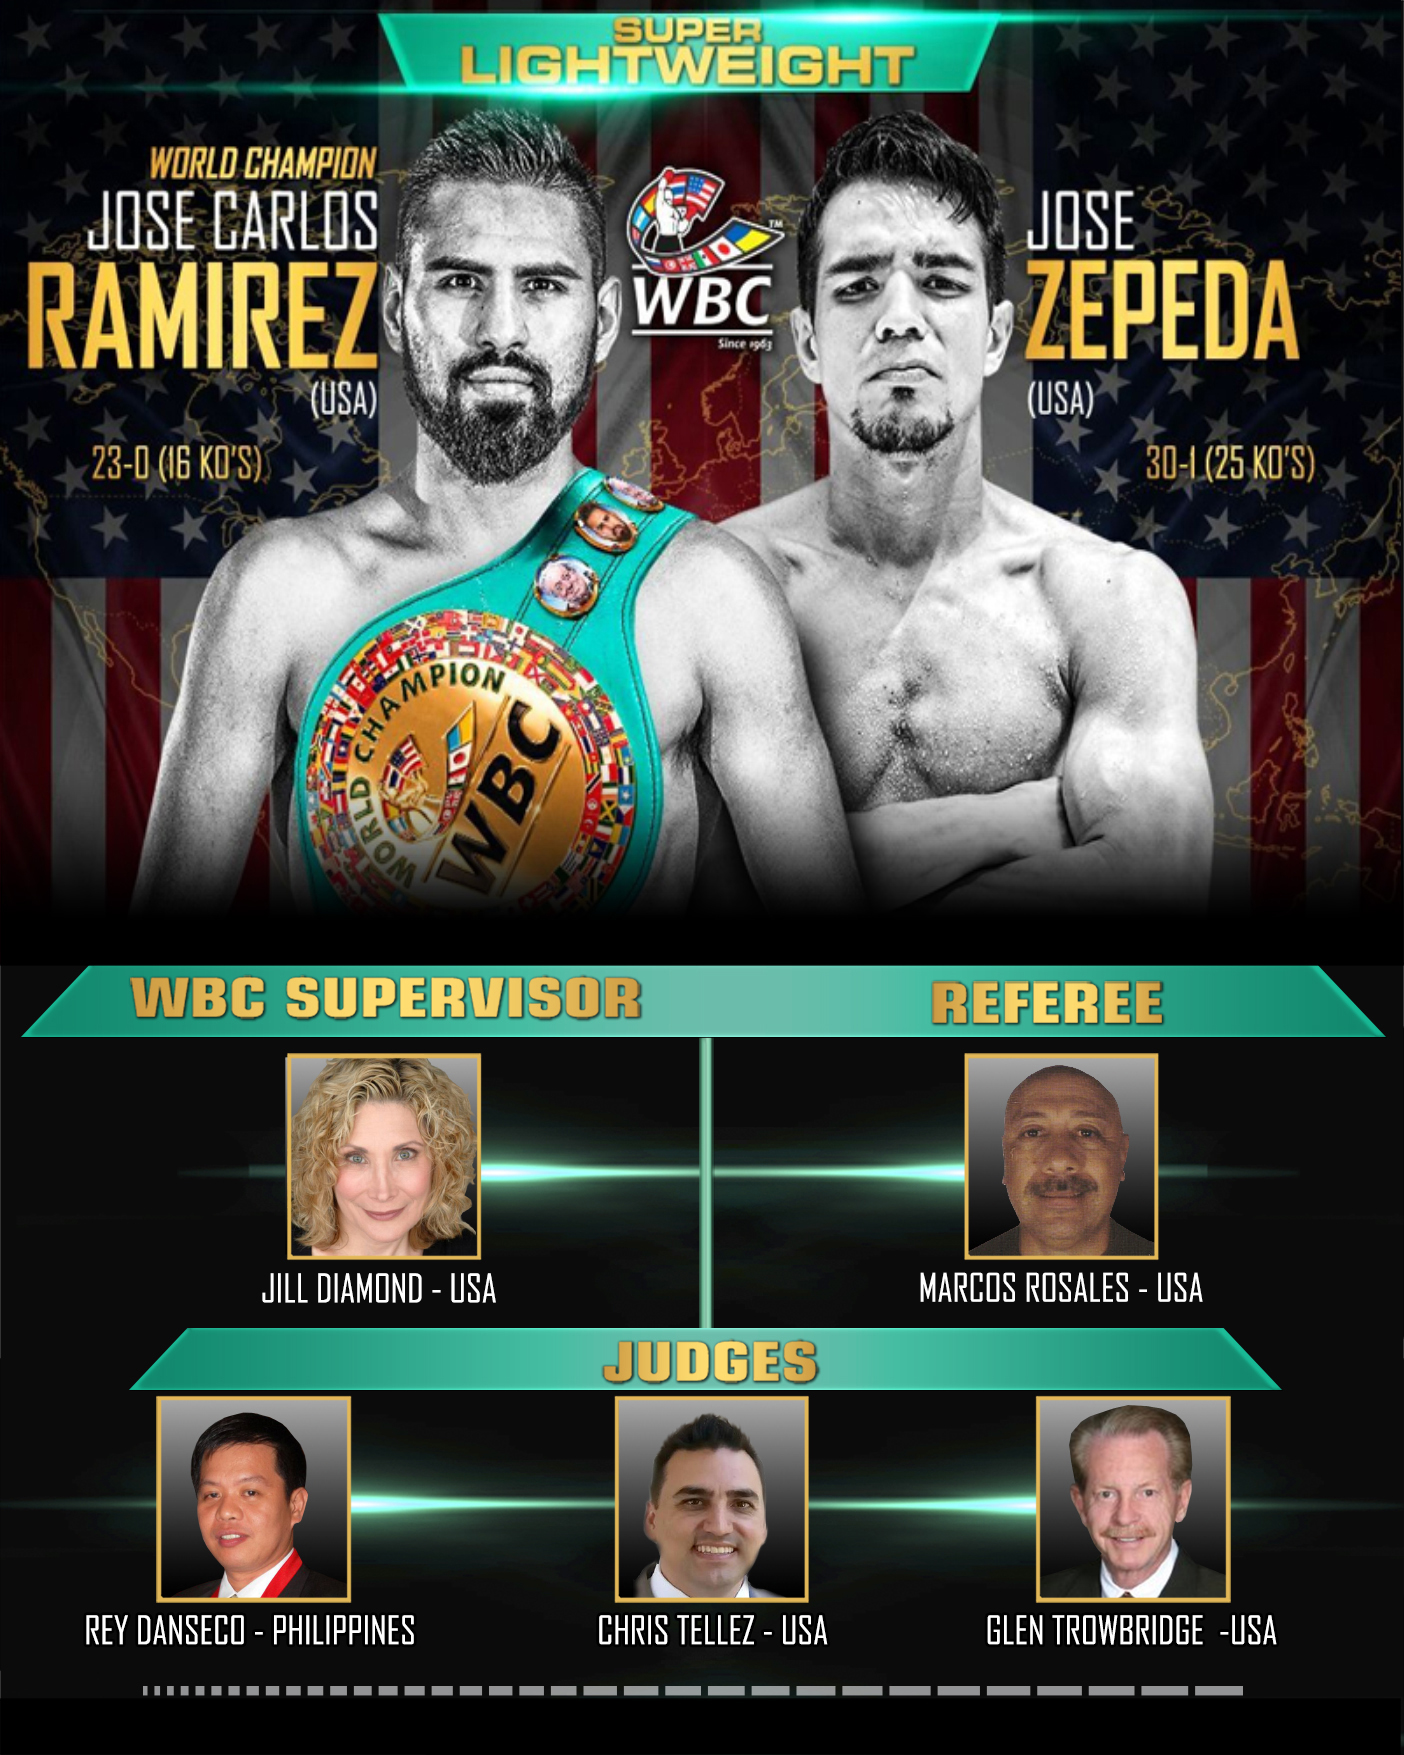 jose-ramirez-vs-jose-zepeda-9feb2019